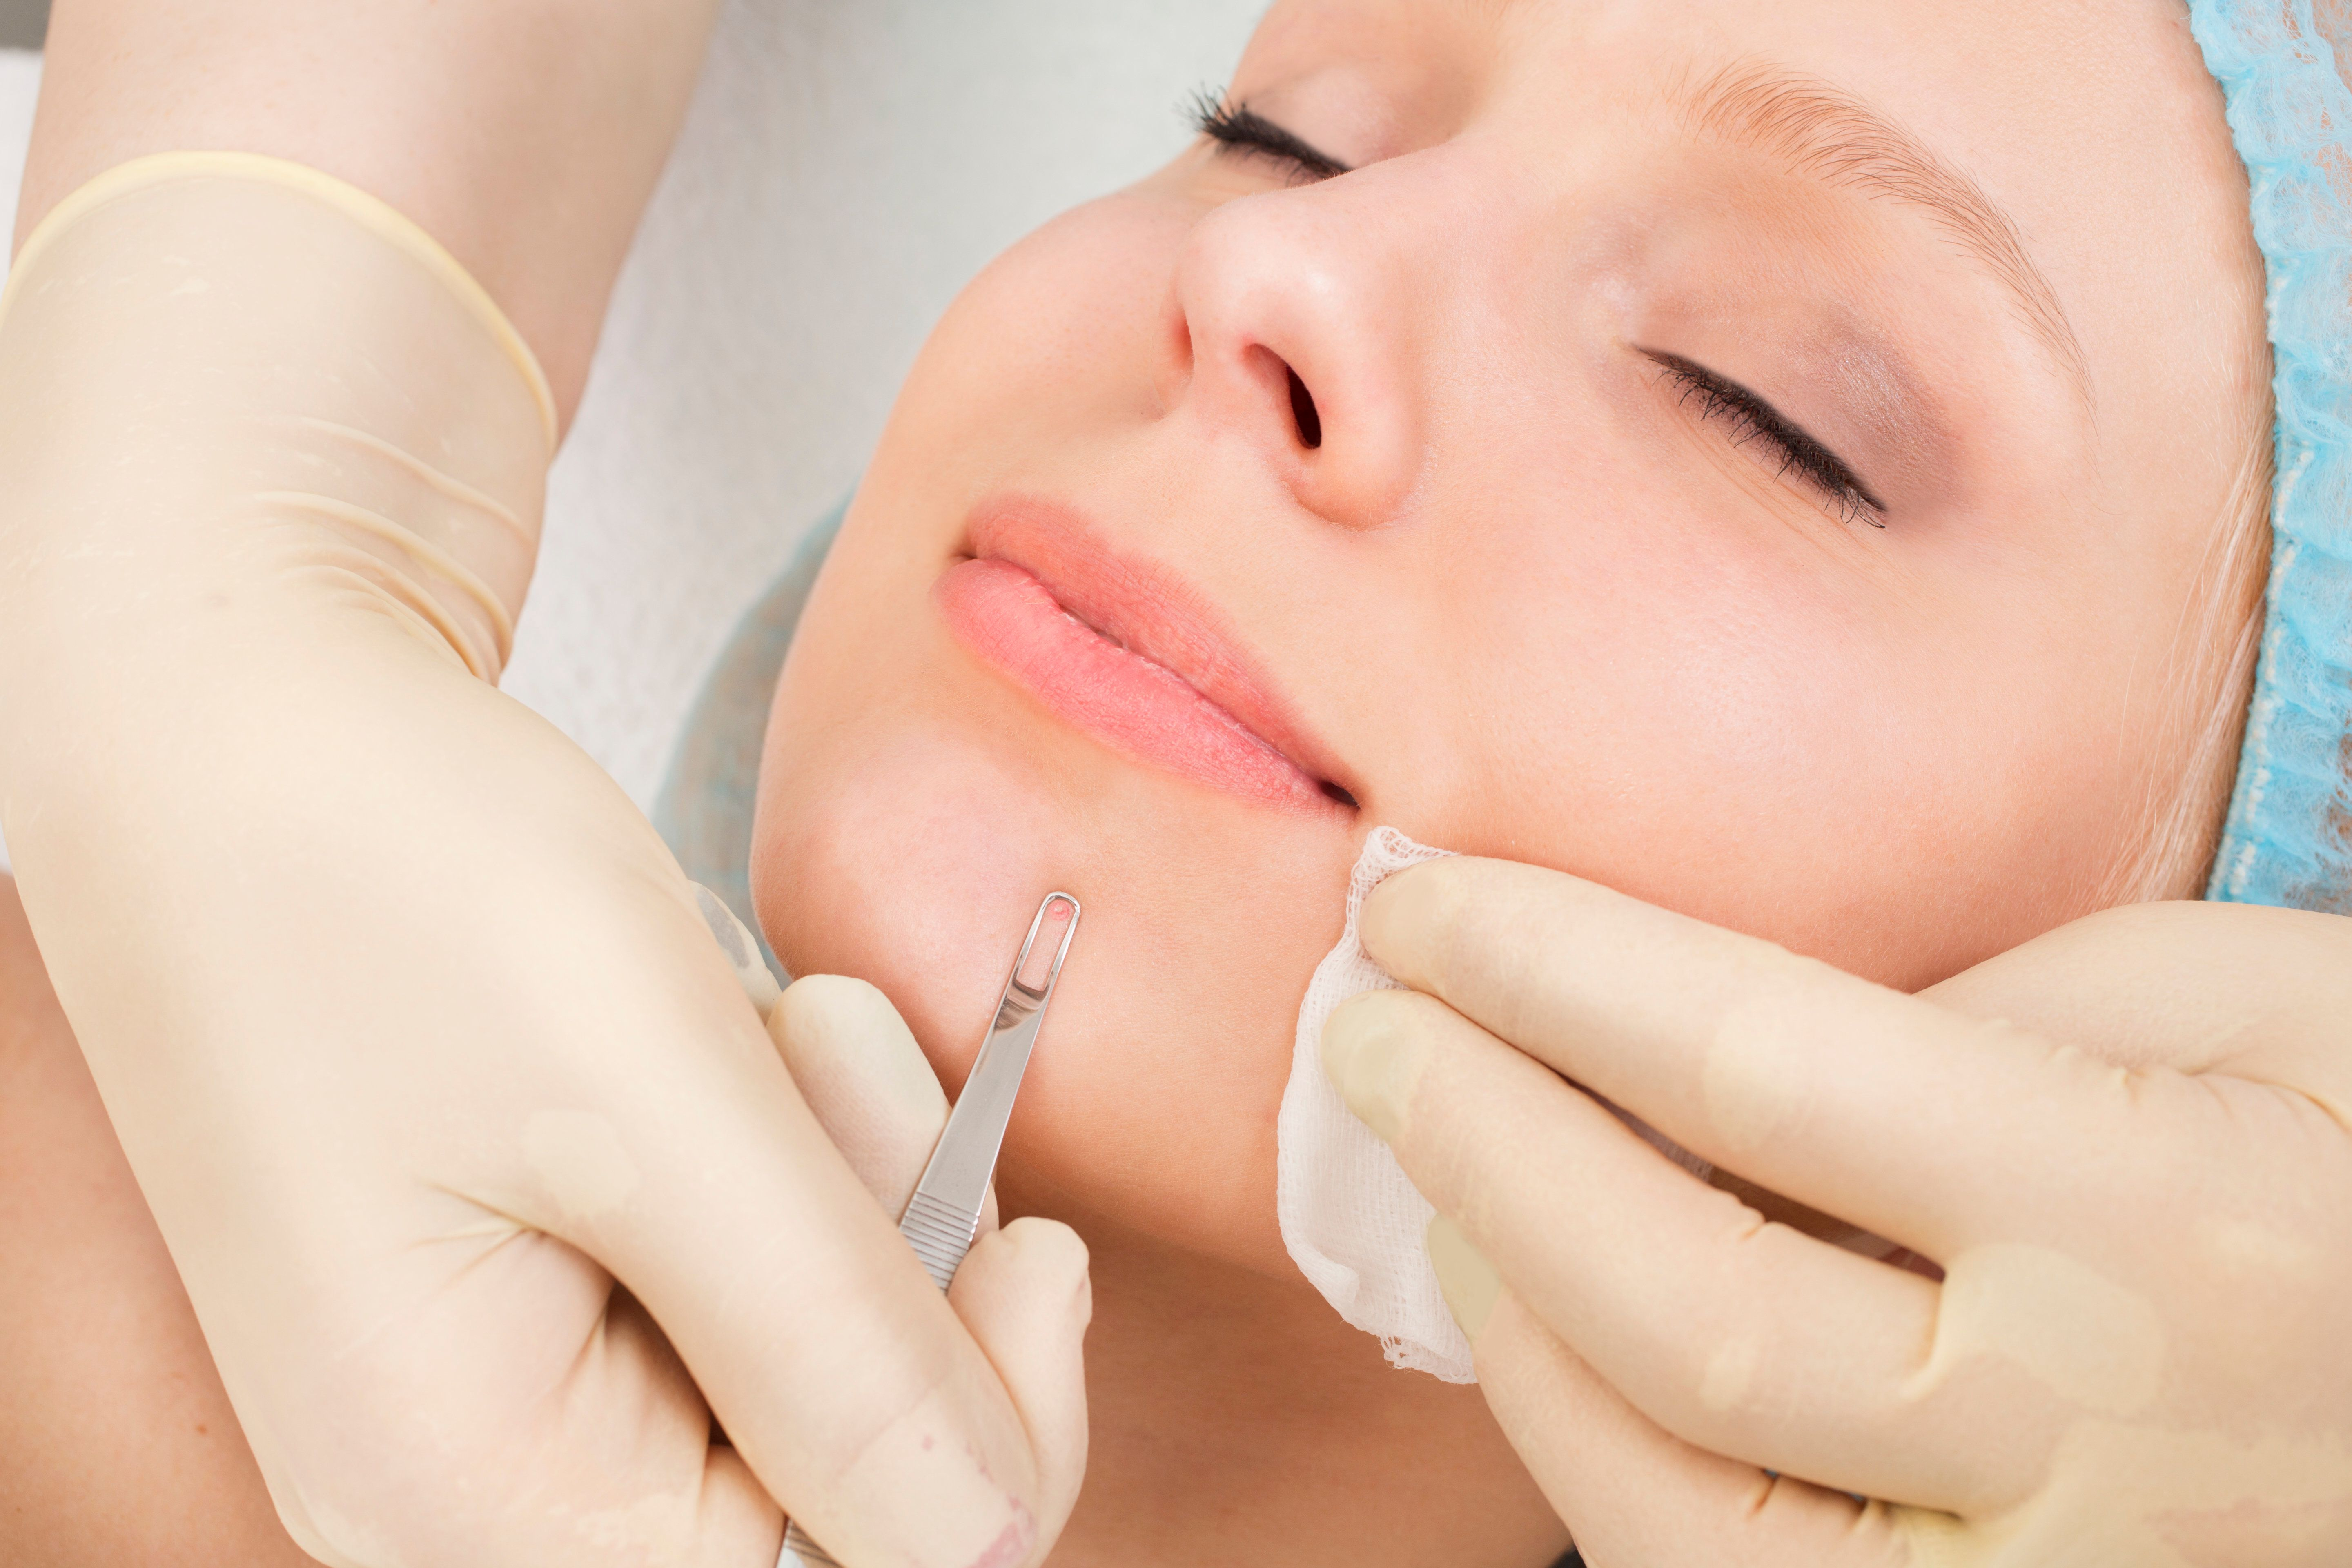 Remarkable, Deep extraction facial All above